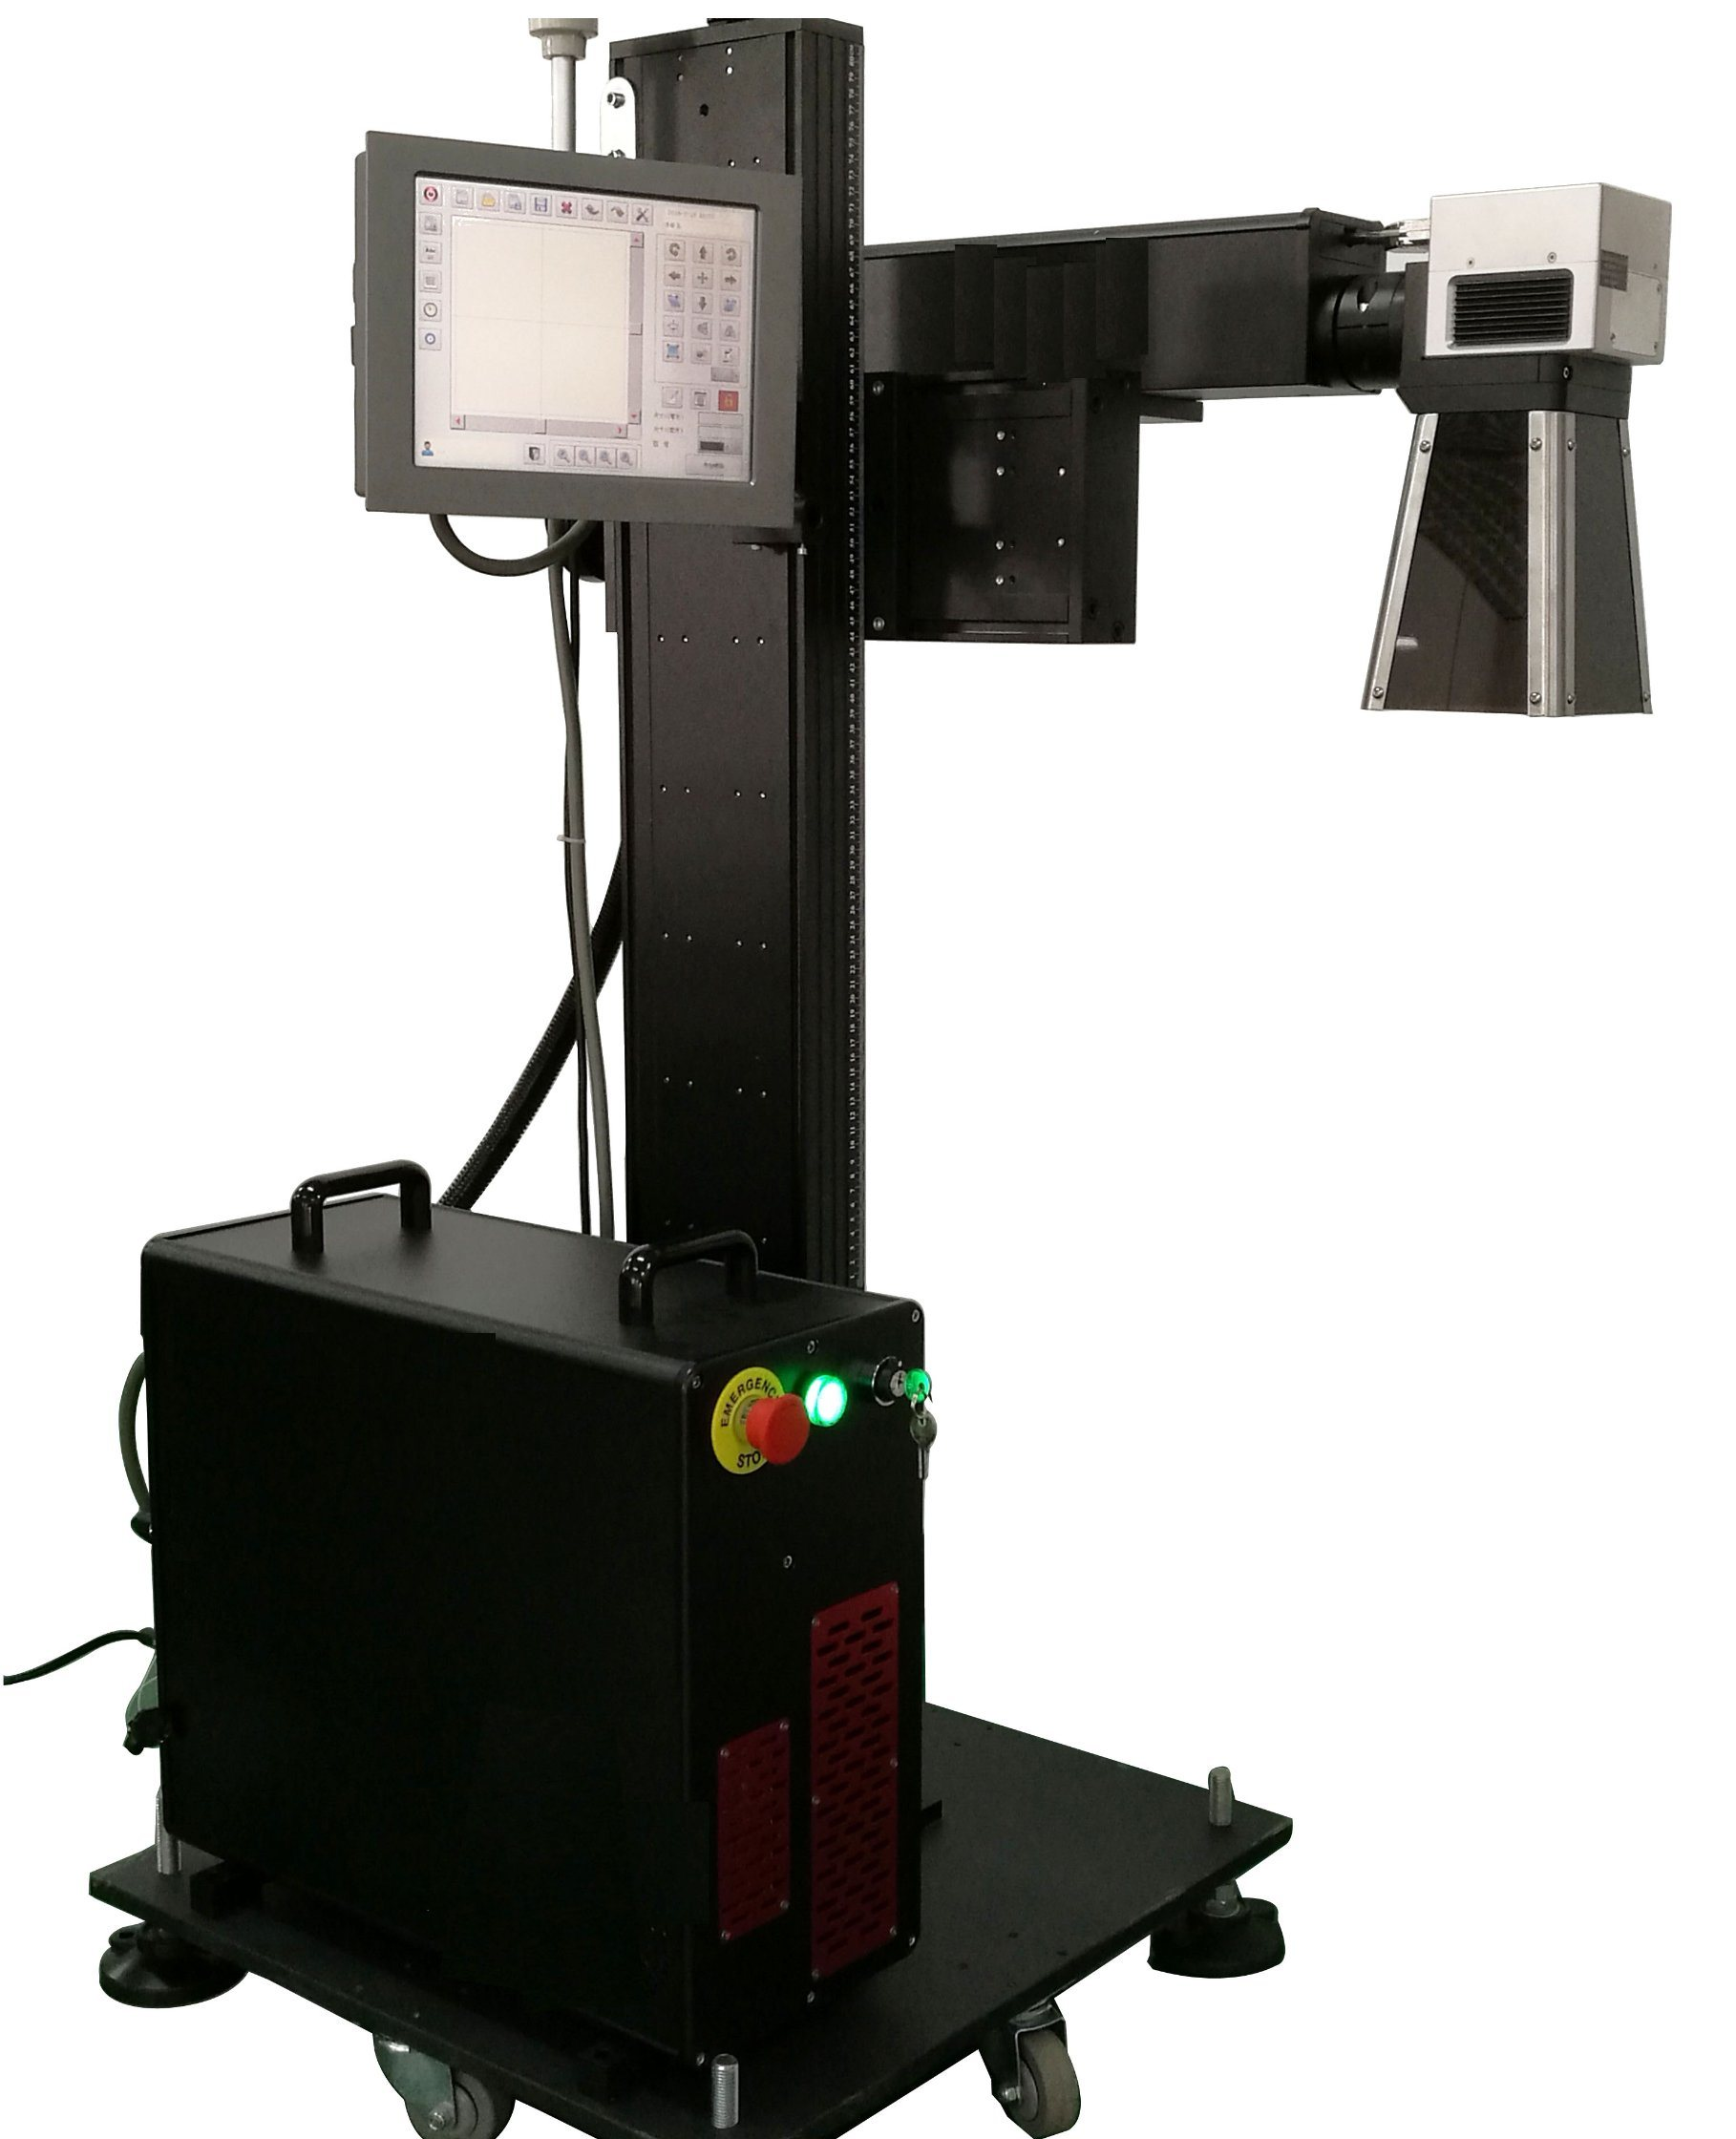 20W 30W Plastic Ipg Fiber Laser Marking Machine for Plastic, PVC, PE and Non-Metal